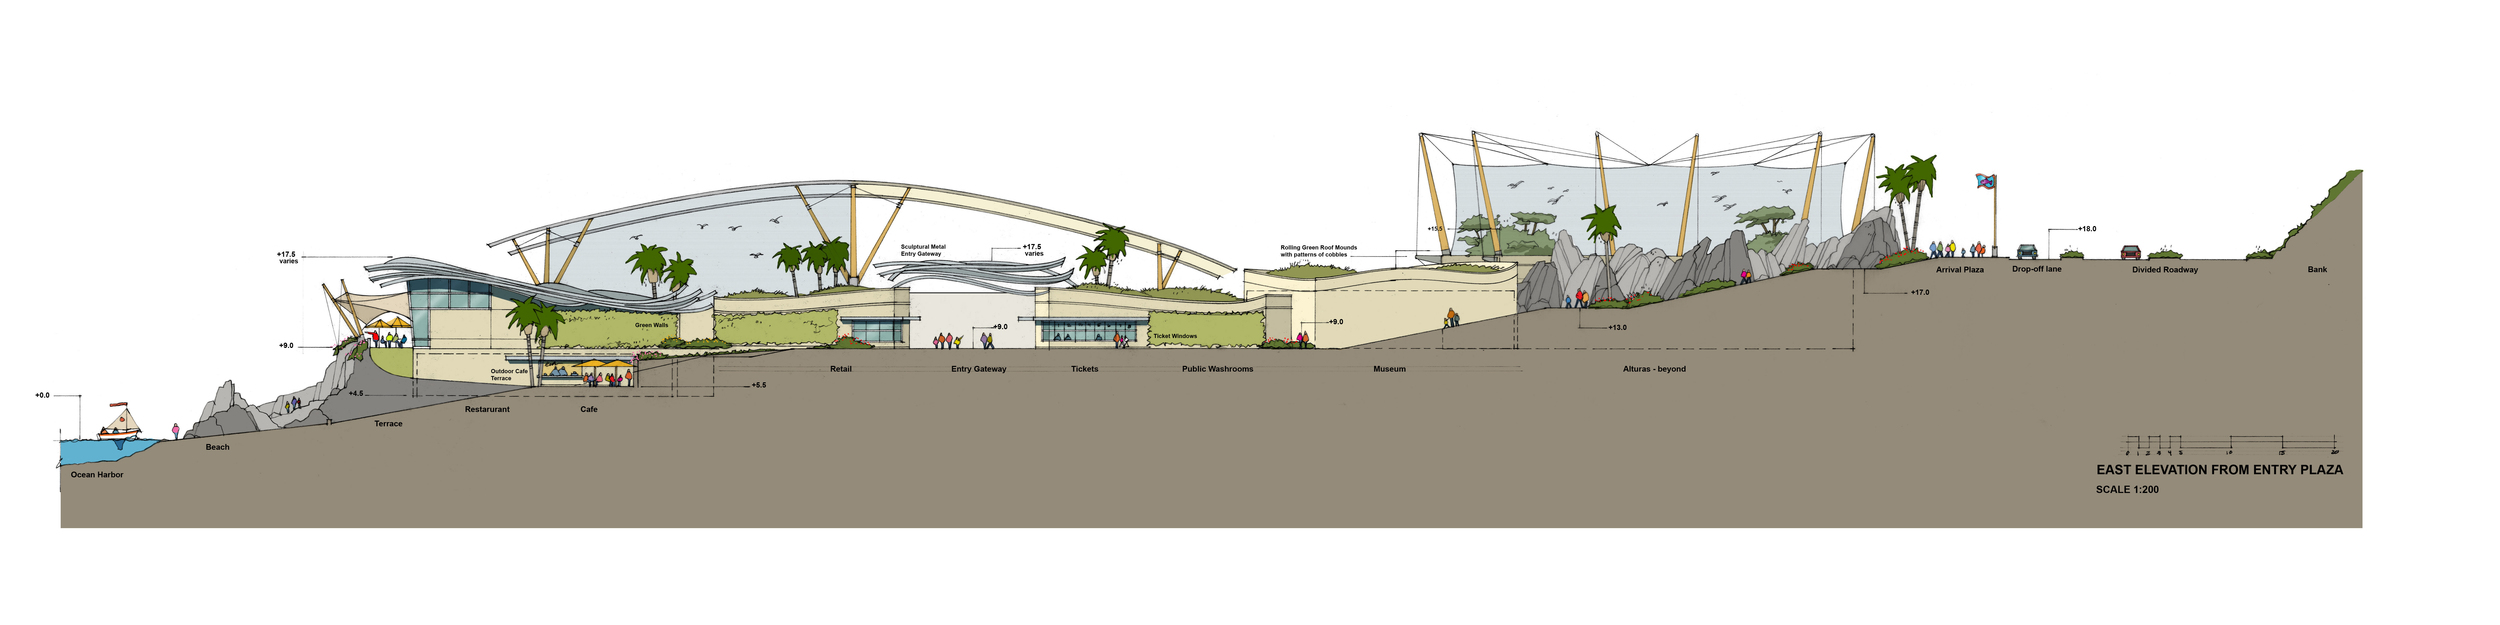 Section-Entry Plaza-revised-Final_05-08 copy.jpg